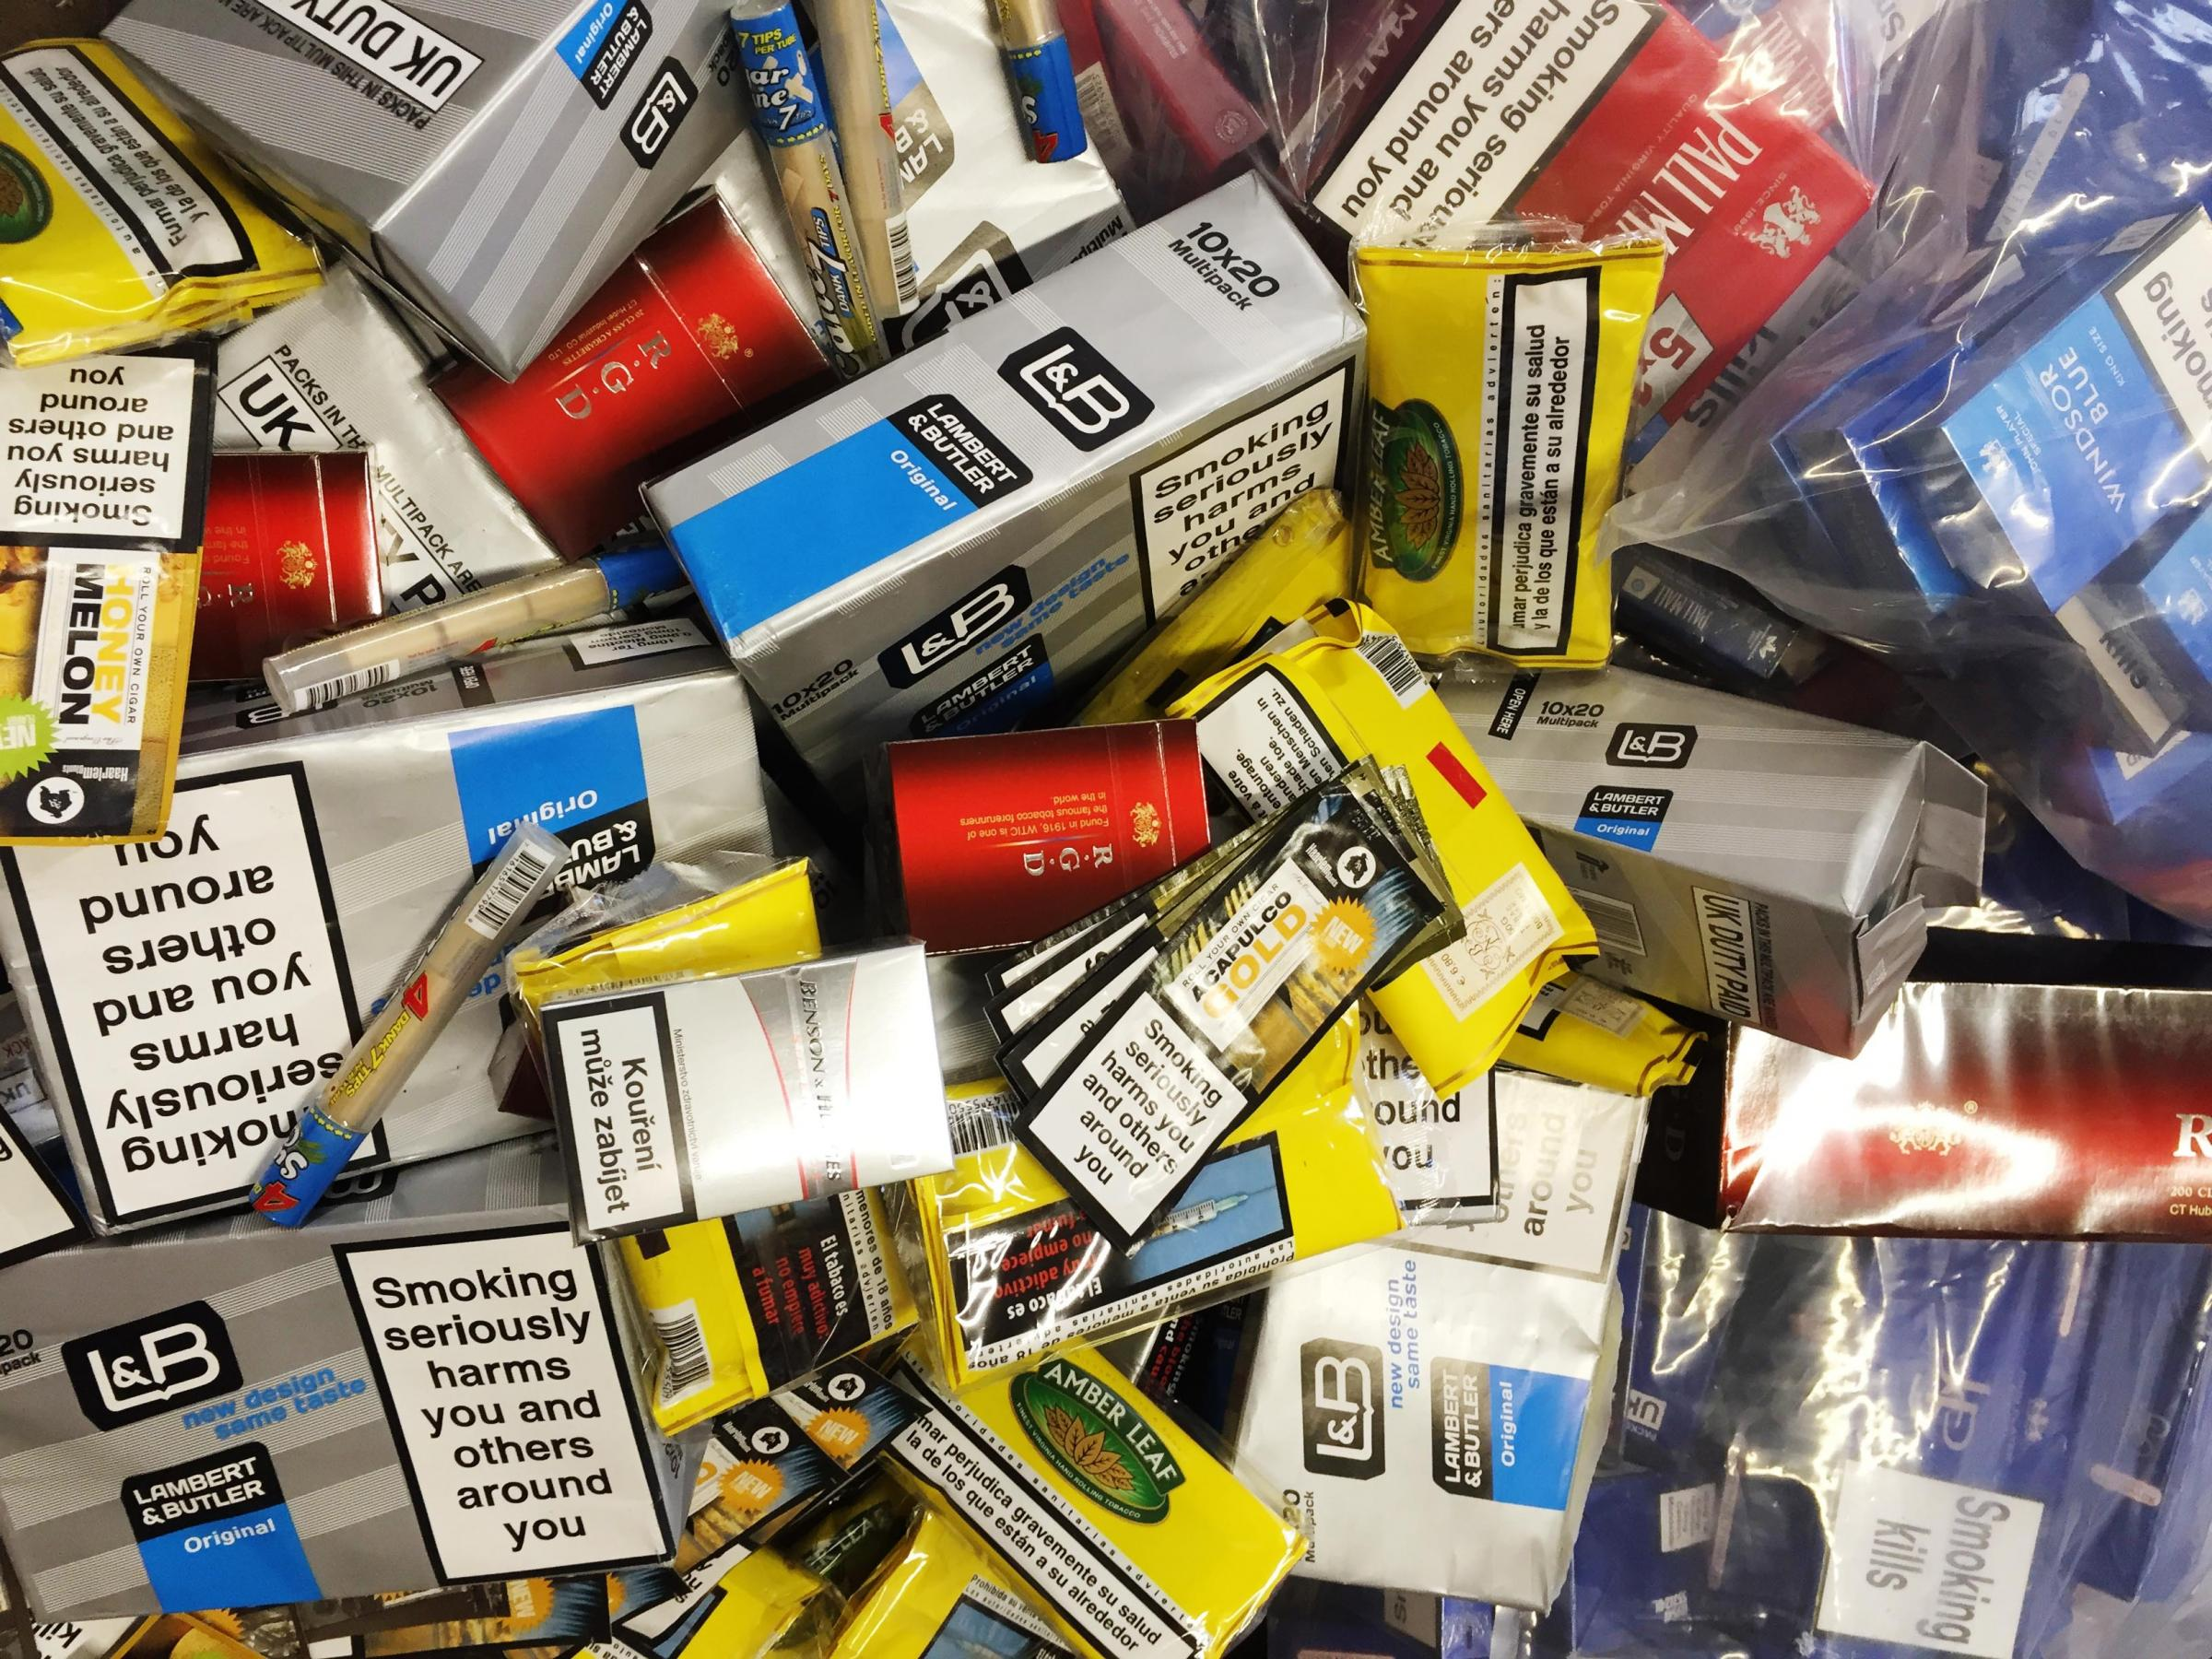 Lancashire Trading Standards and police seized several thousand pounds of illicit cigarettes during raid in Nelson